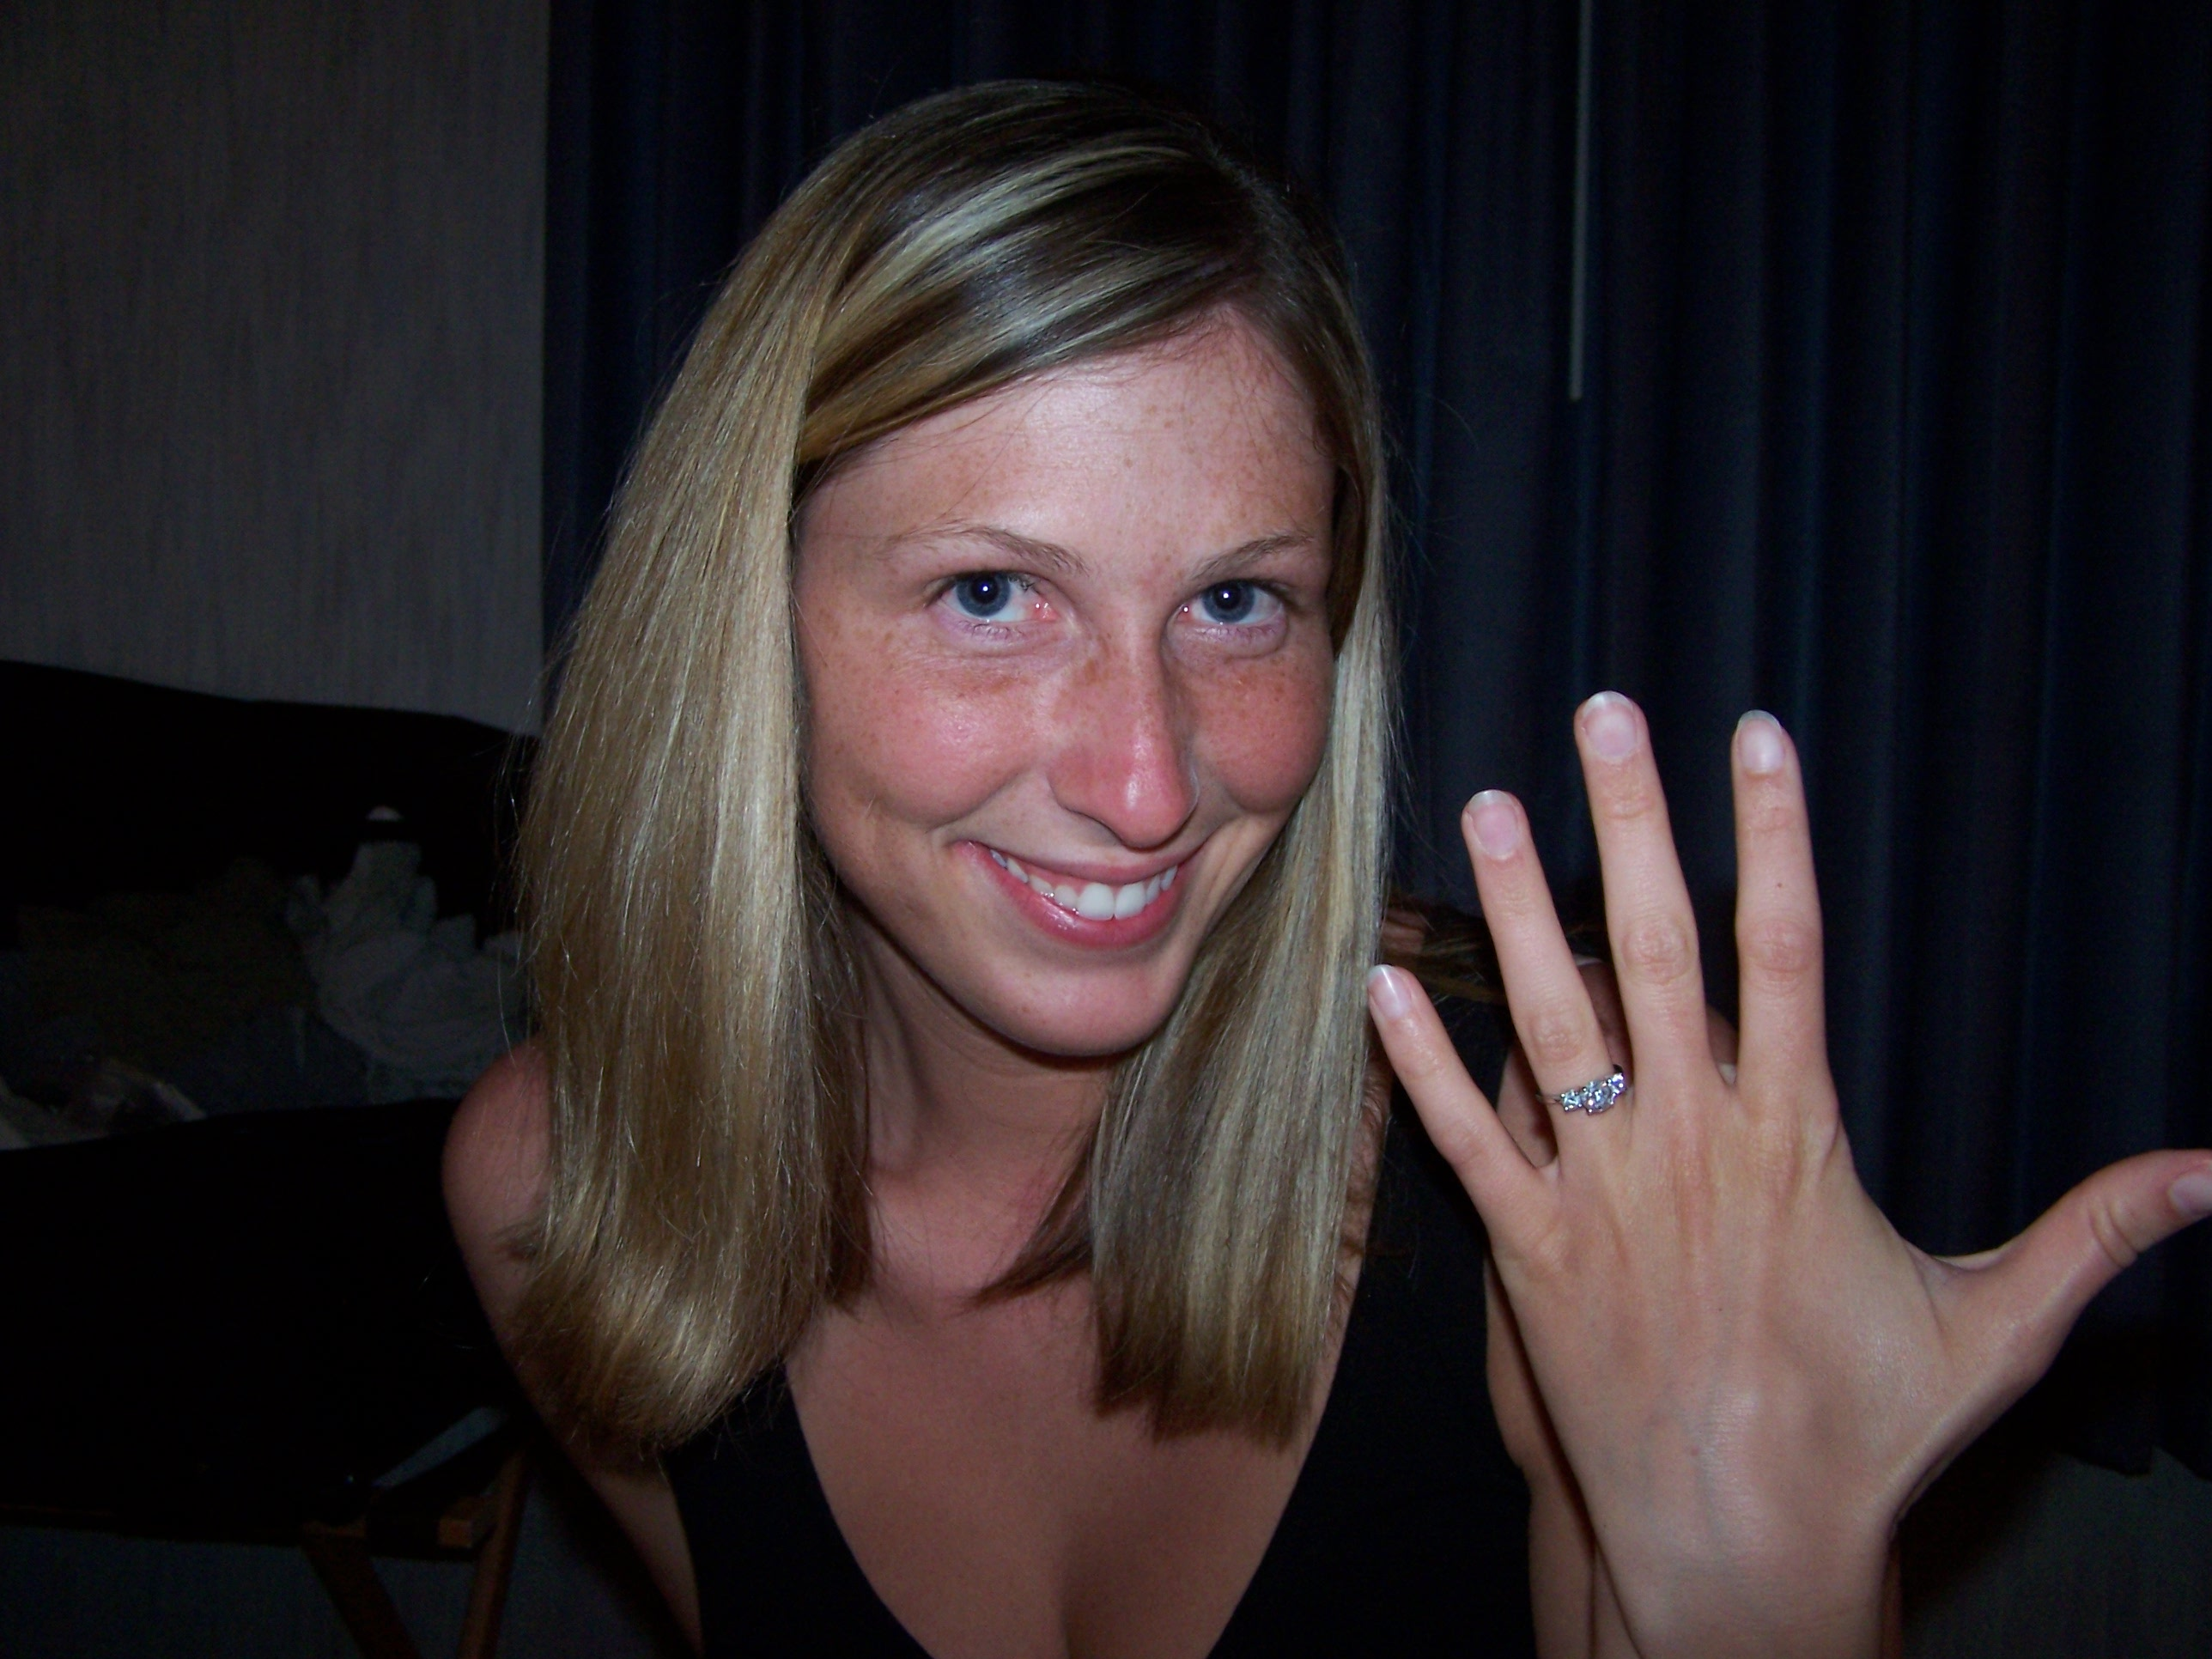 engaged woman www.herviewfromhome.com